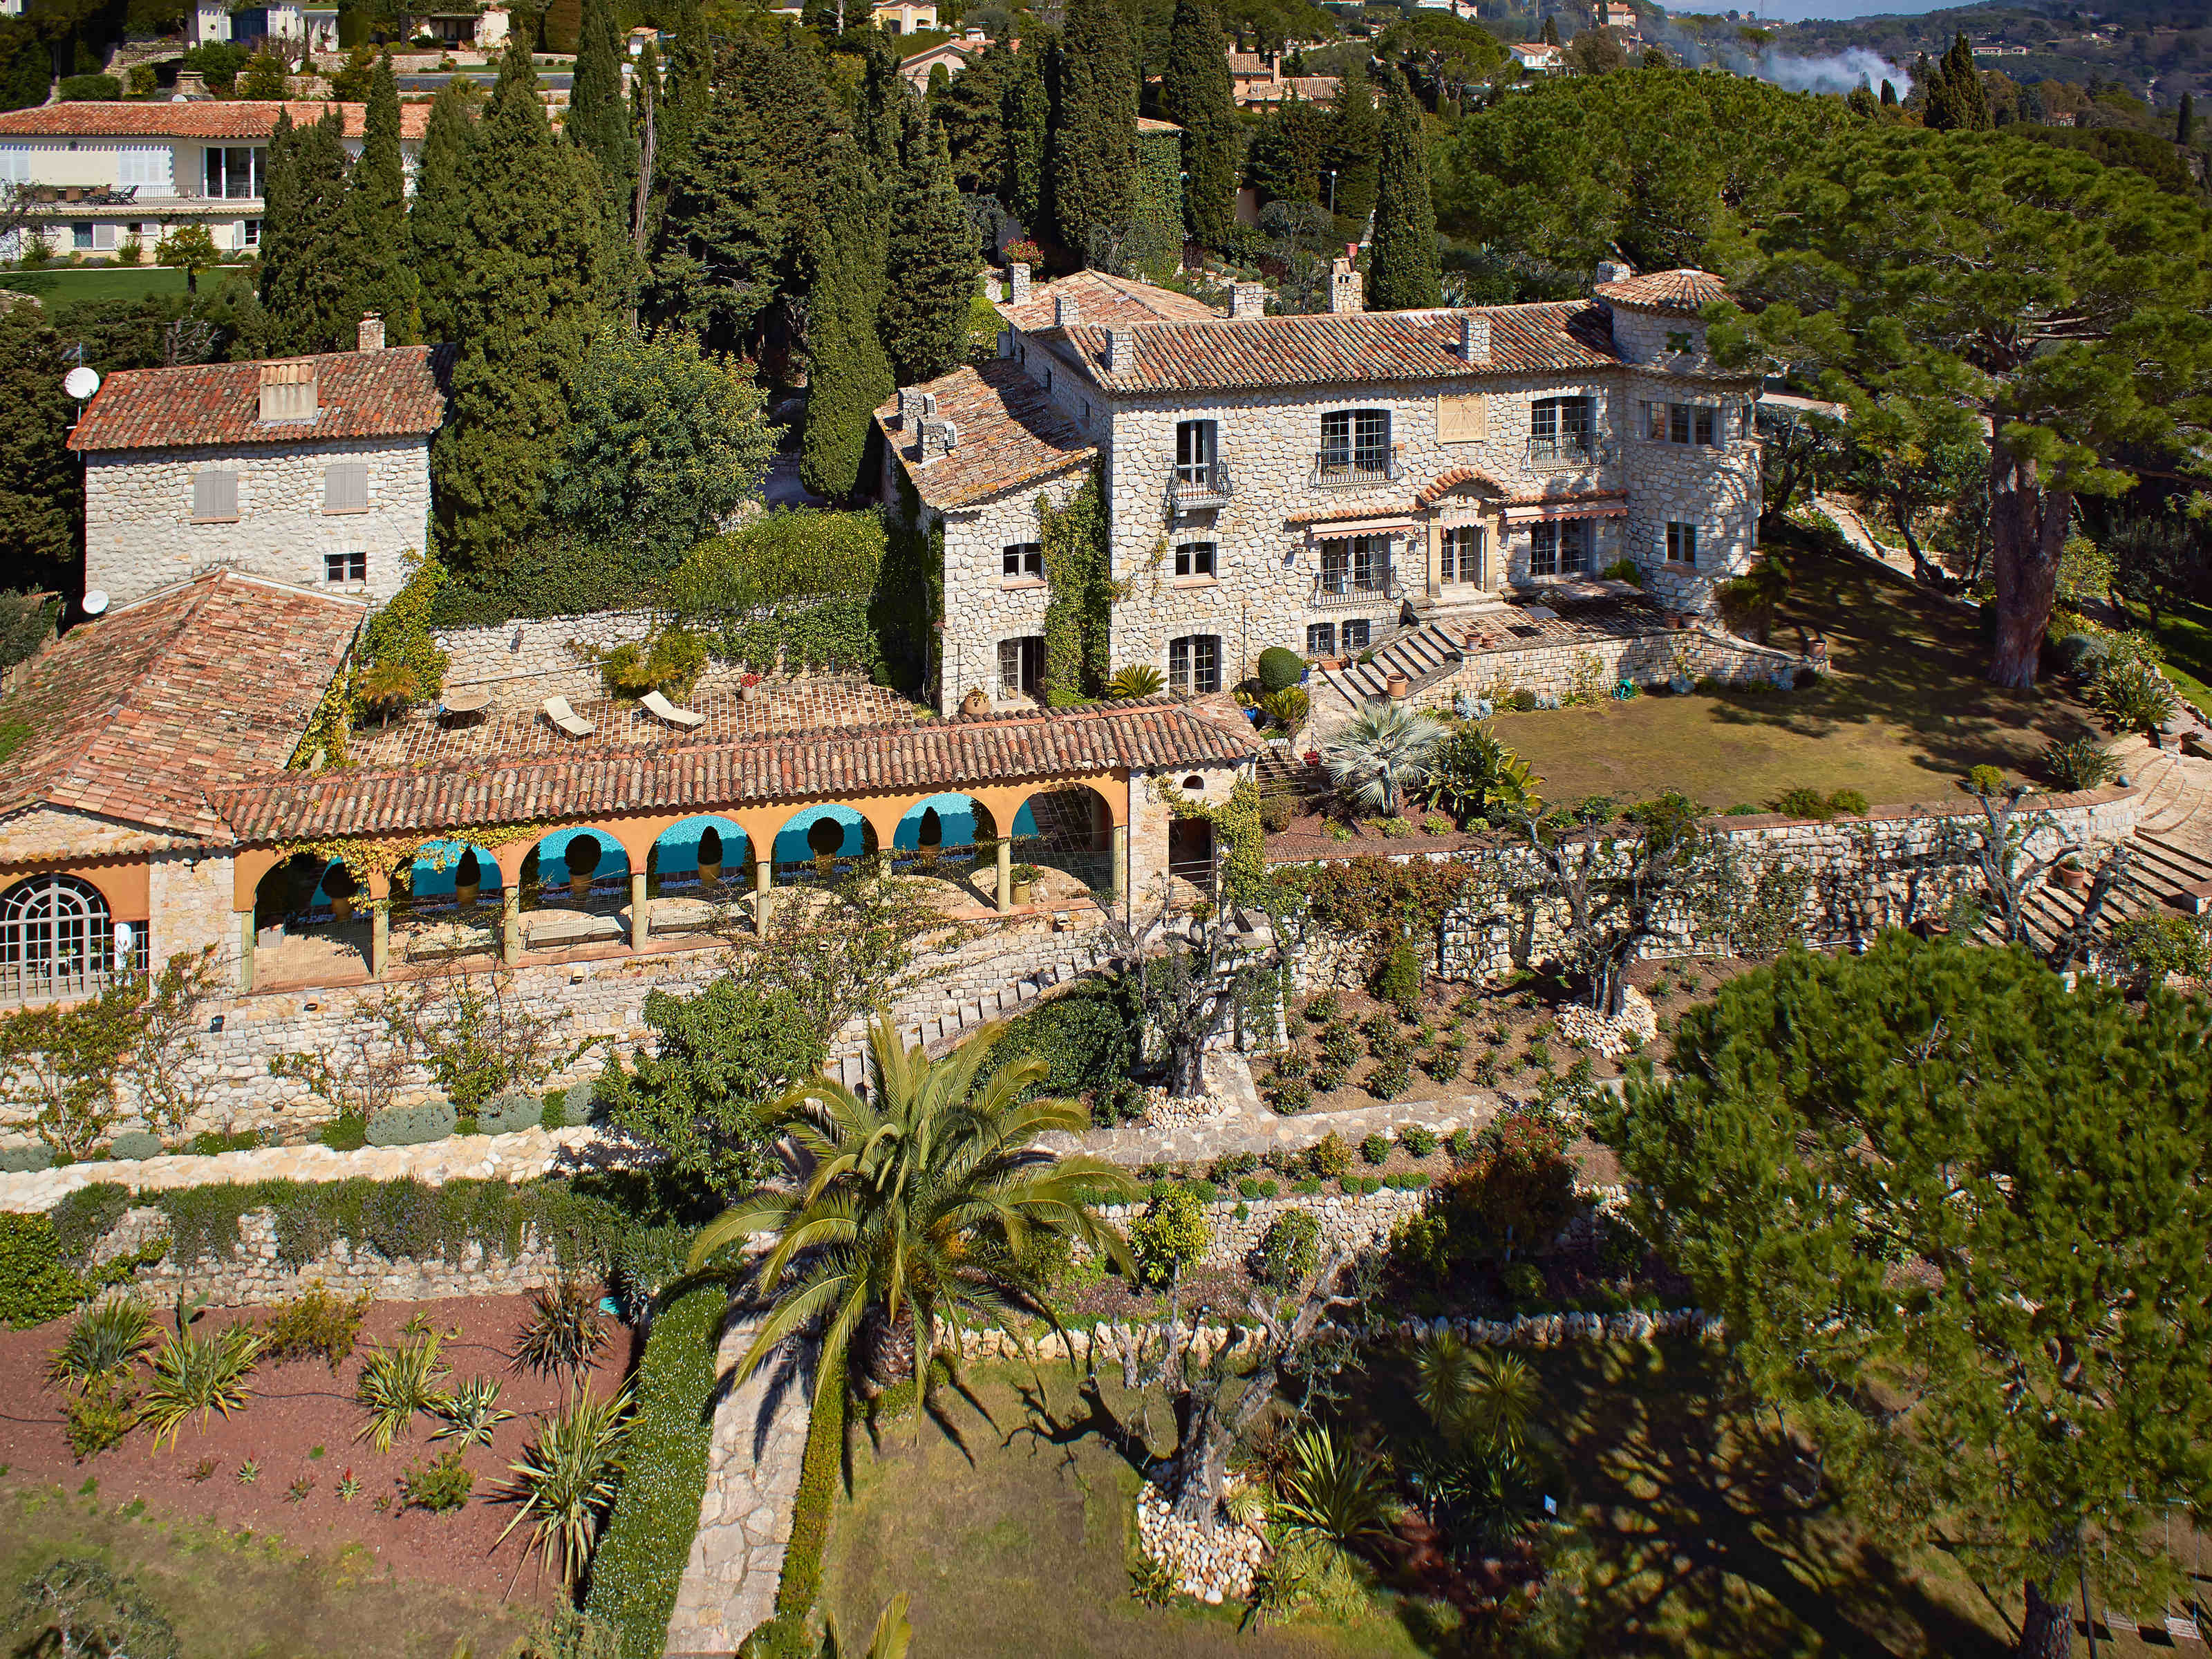 단독 가정 주택 용 매매 에 Beautiful luxurious property in Mougins with sea views on French Riviera Mougins, 프로벤스 앞ㄹ프스 코테 D'Azur 06250 프랑스